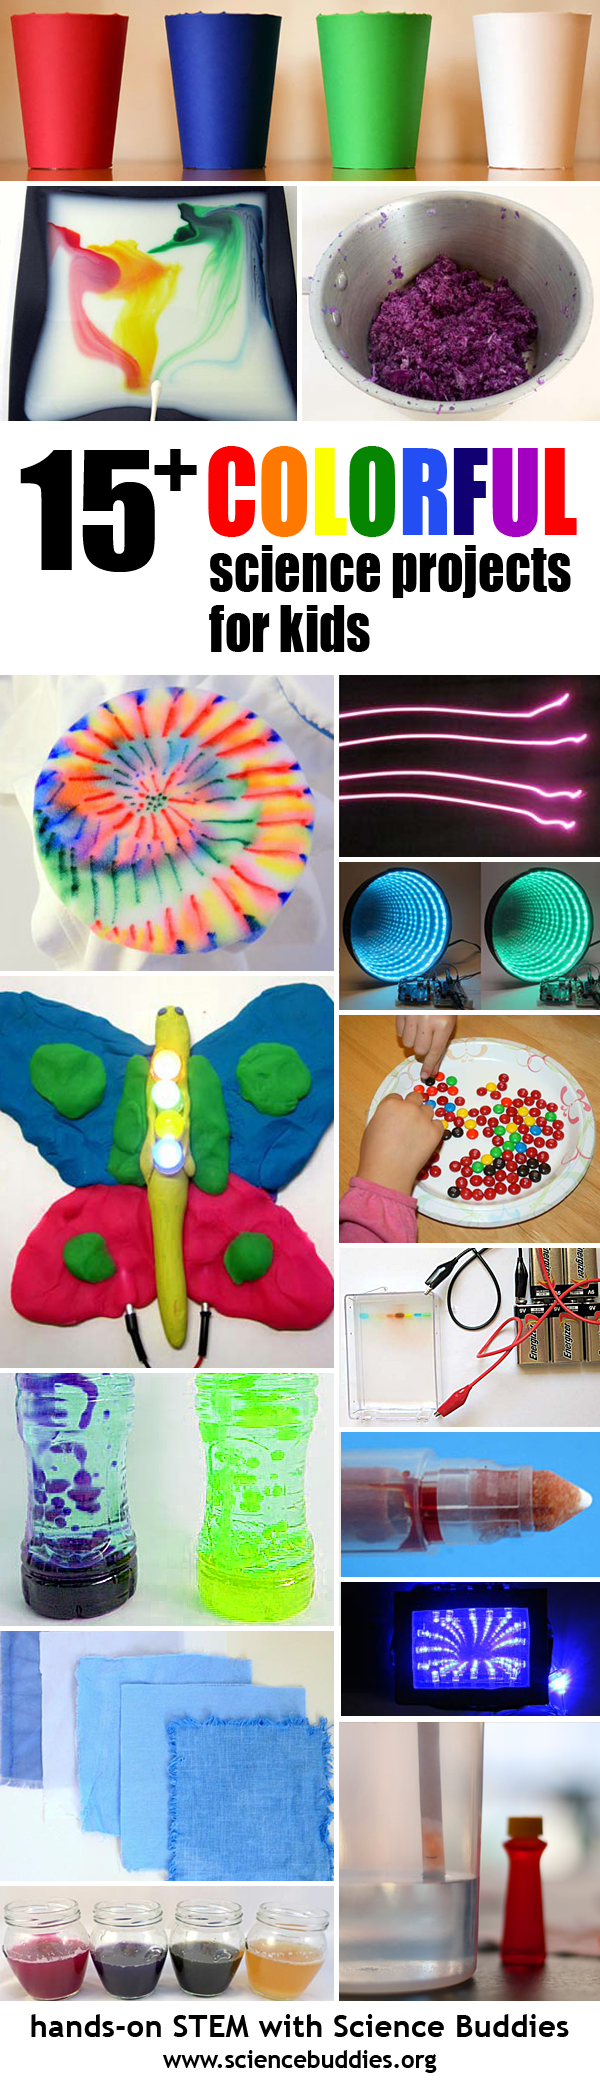 Colorful STEM Projects for Summer Science Fun